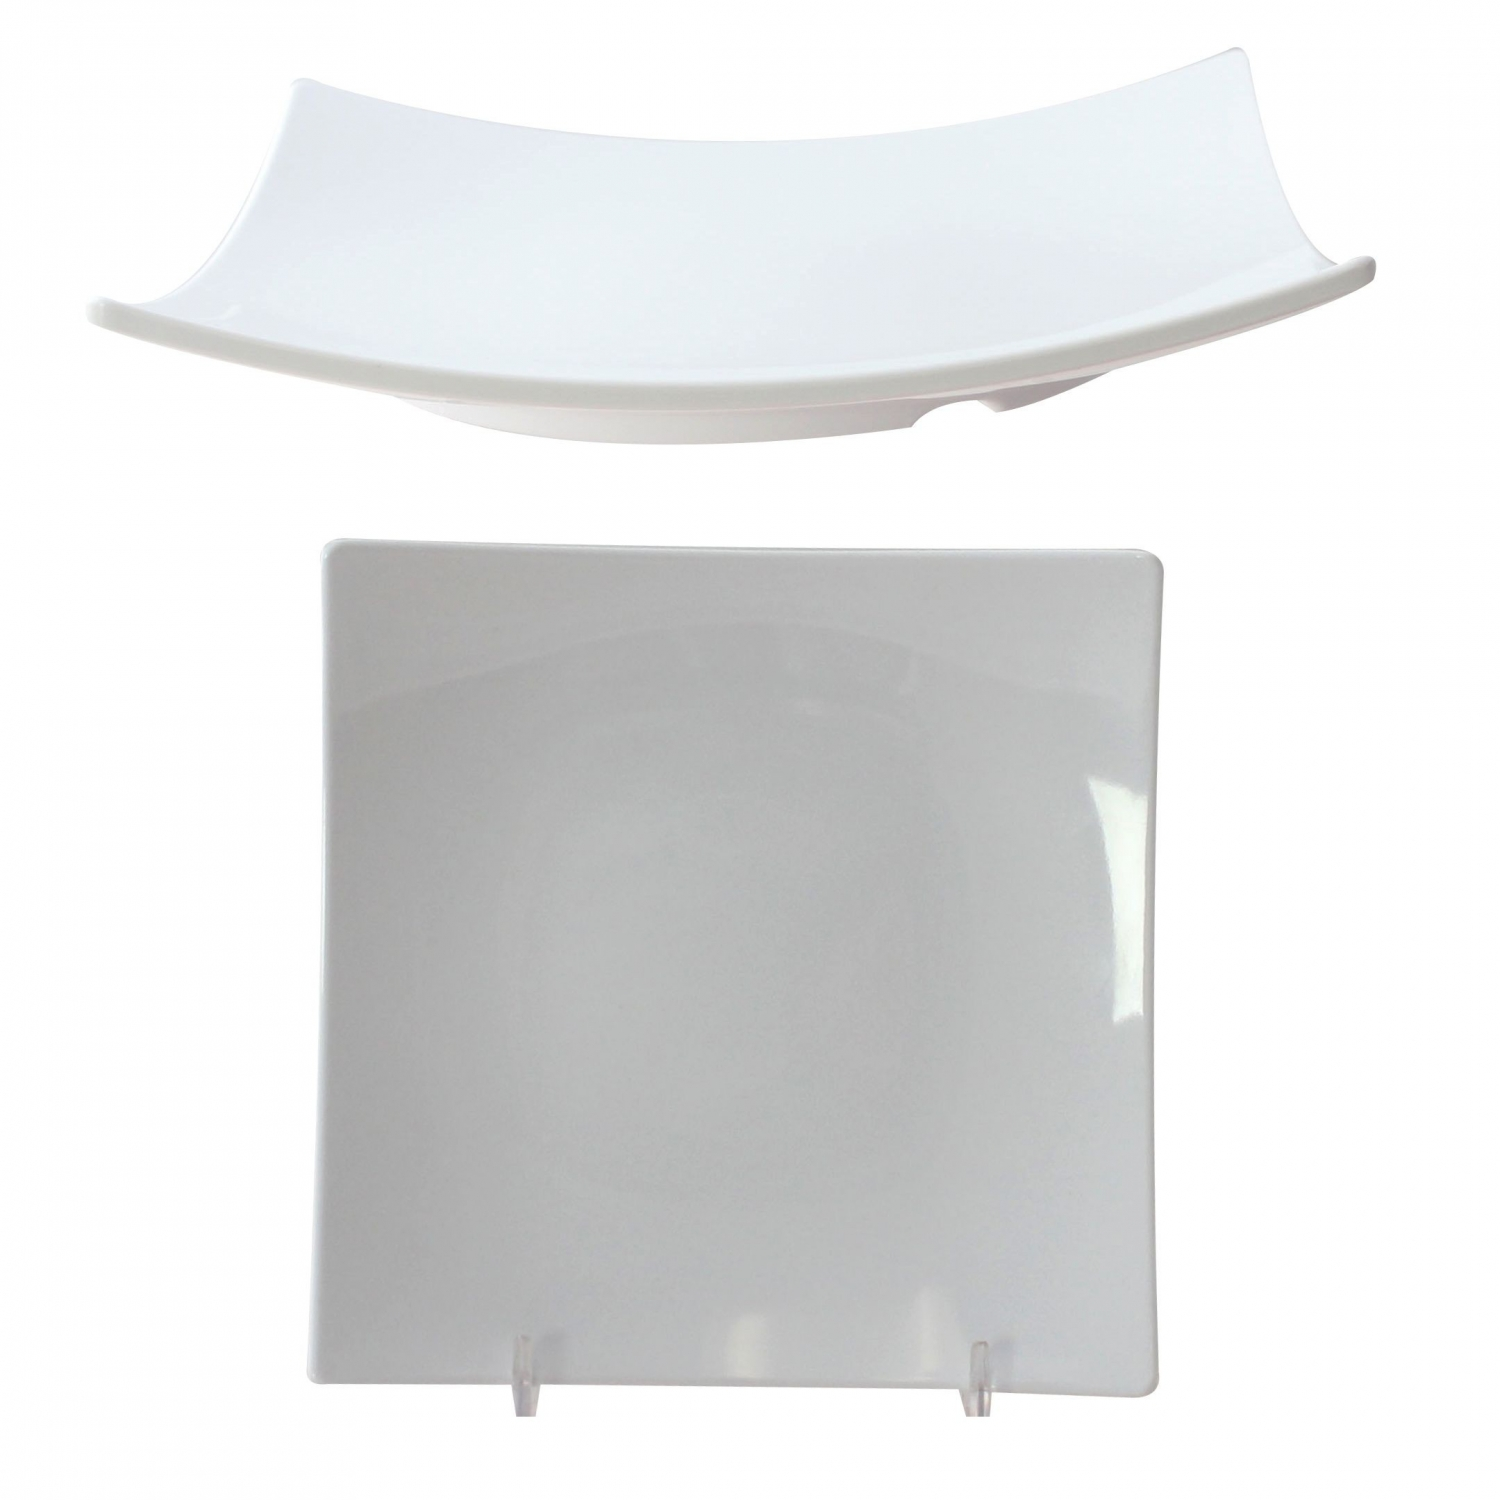 "Thunder Group 24006WT Square Classic White Series Plate 6"" - 1 doz"